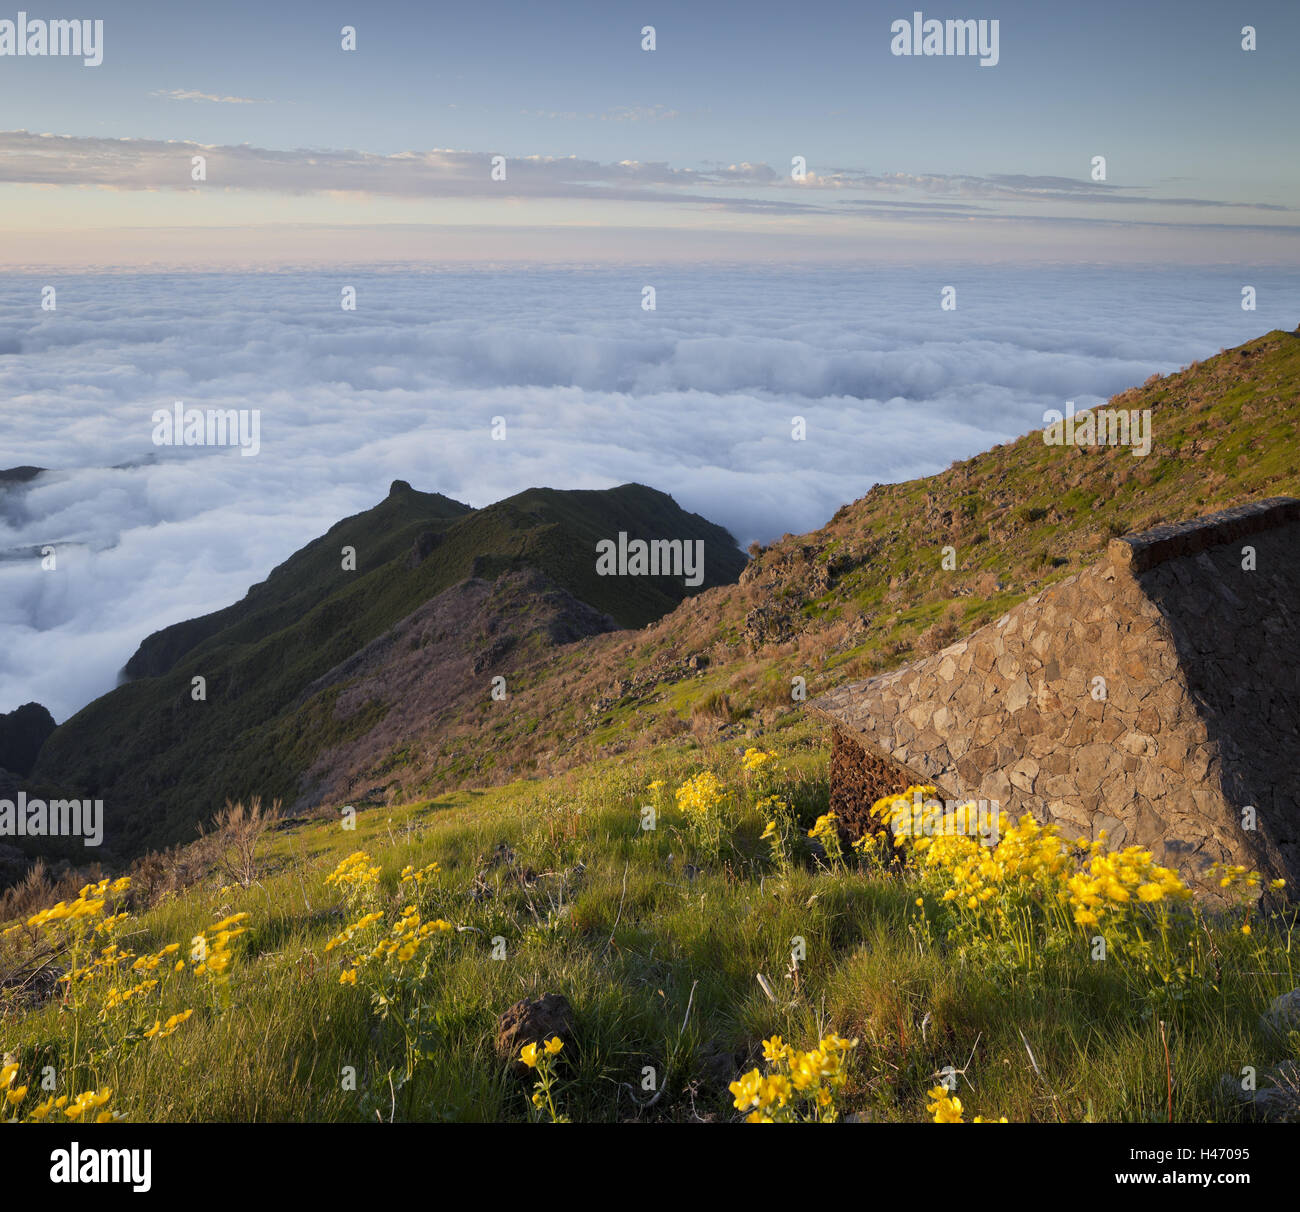 Resting place with Terxeira, sea of clouds, Madeira, Portugal, - Stock Image